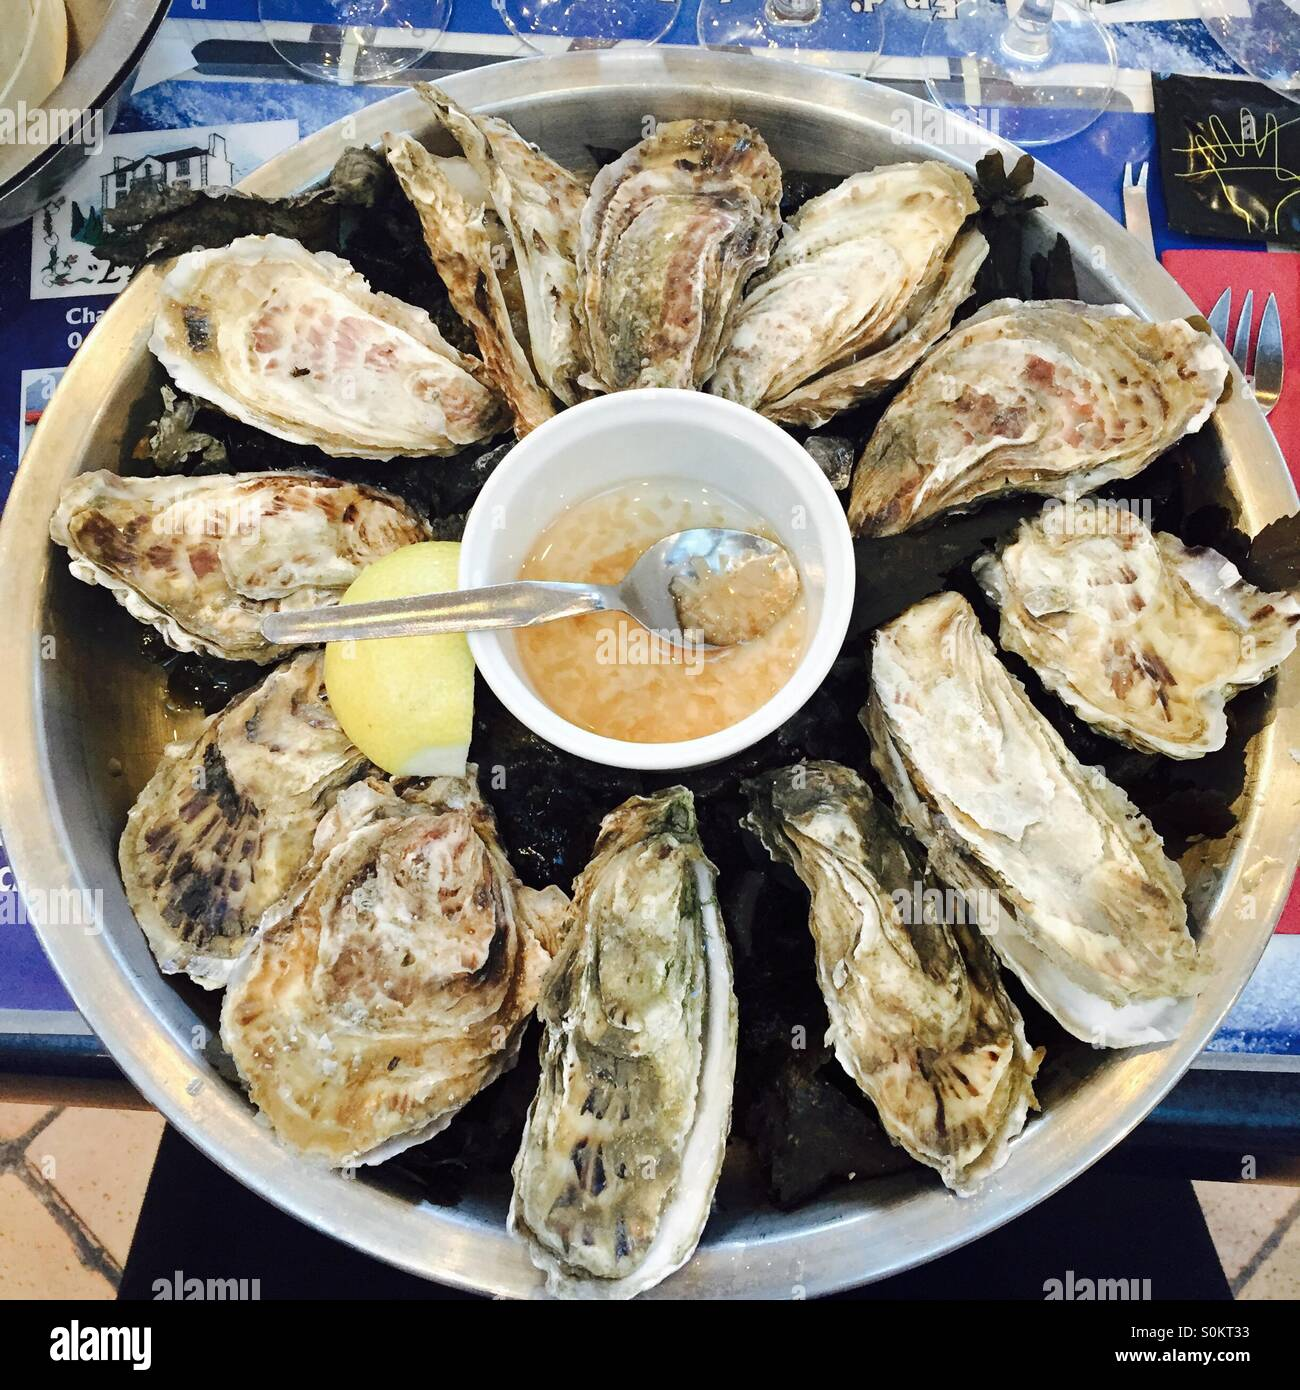 Oysters with lemon and sauce - Stock Image